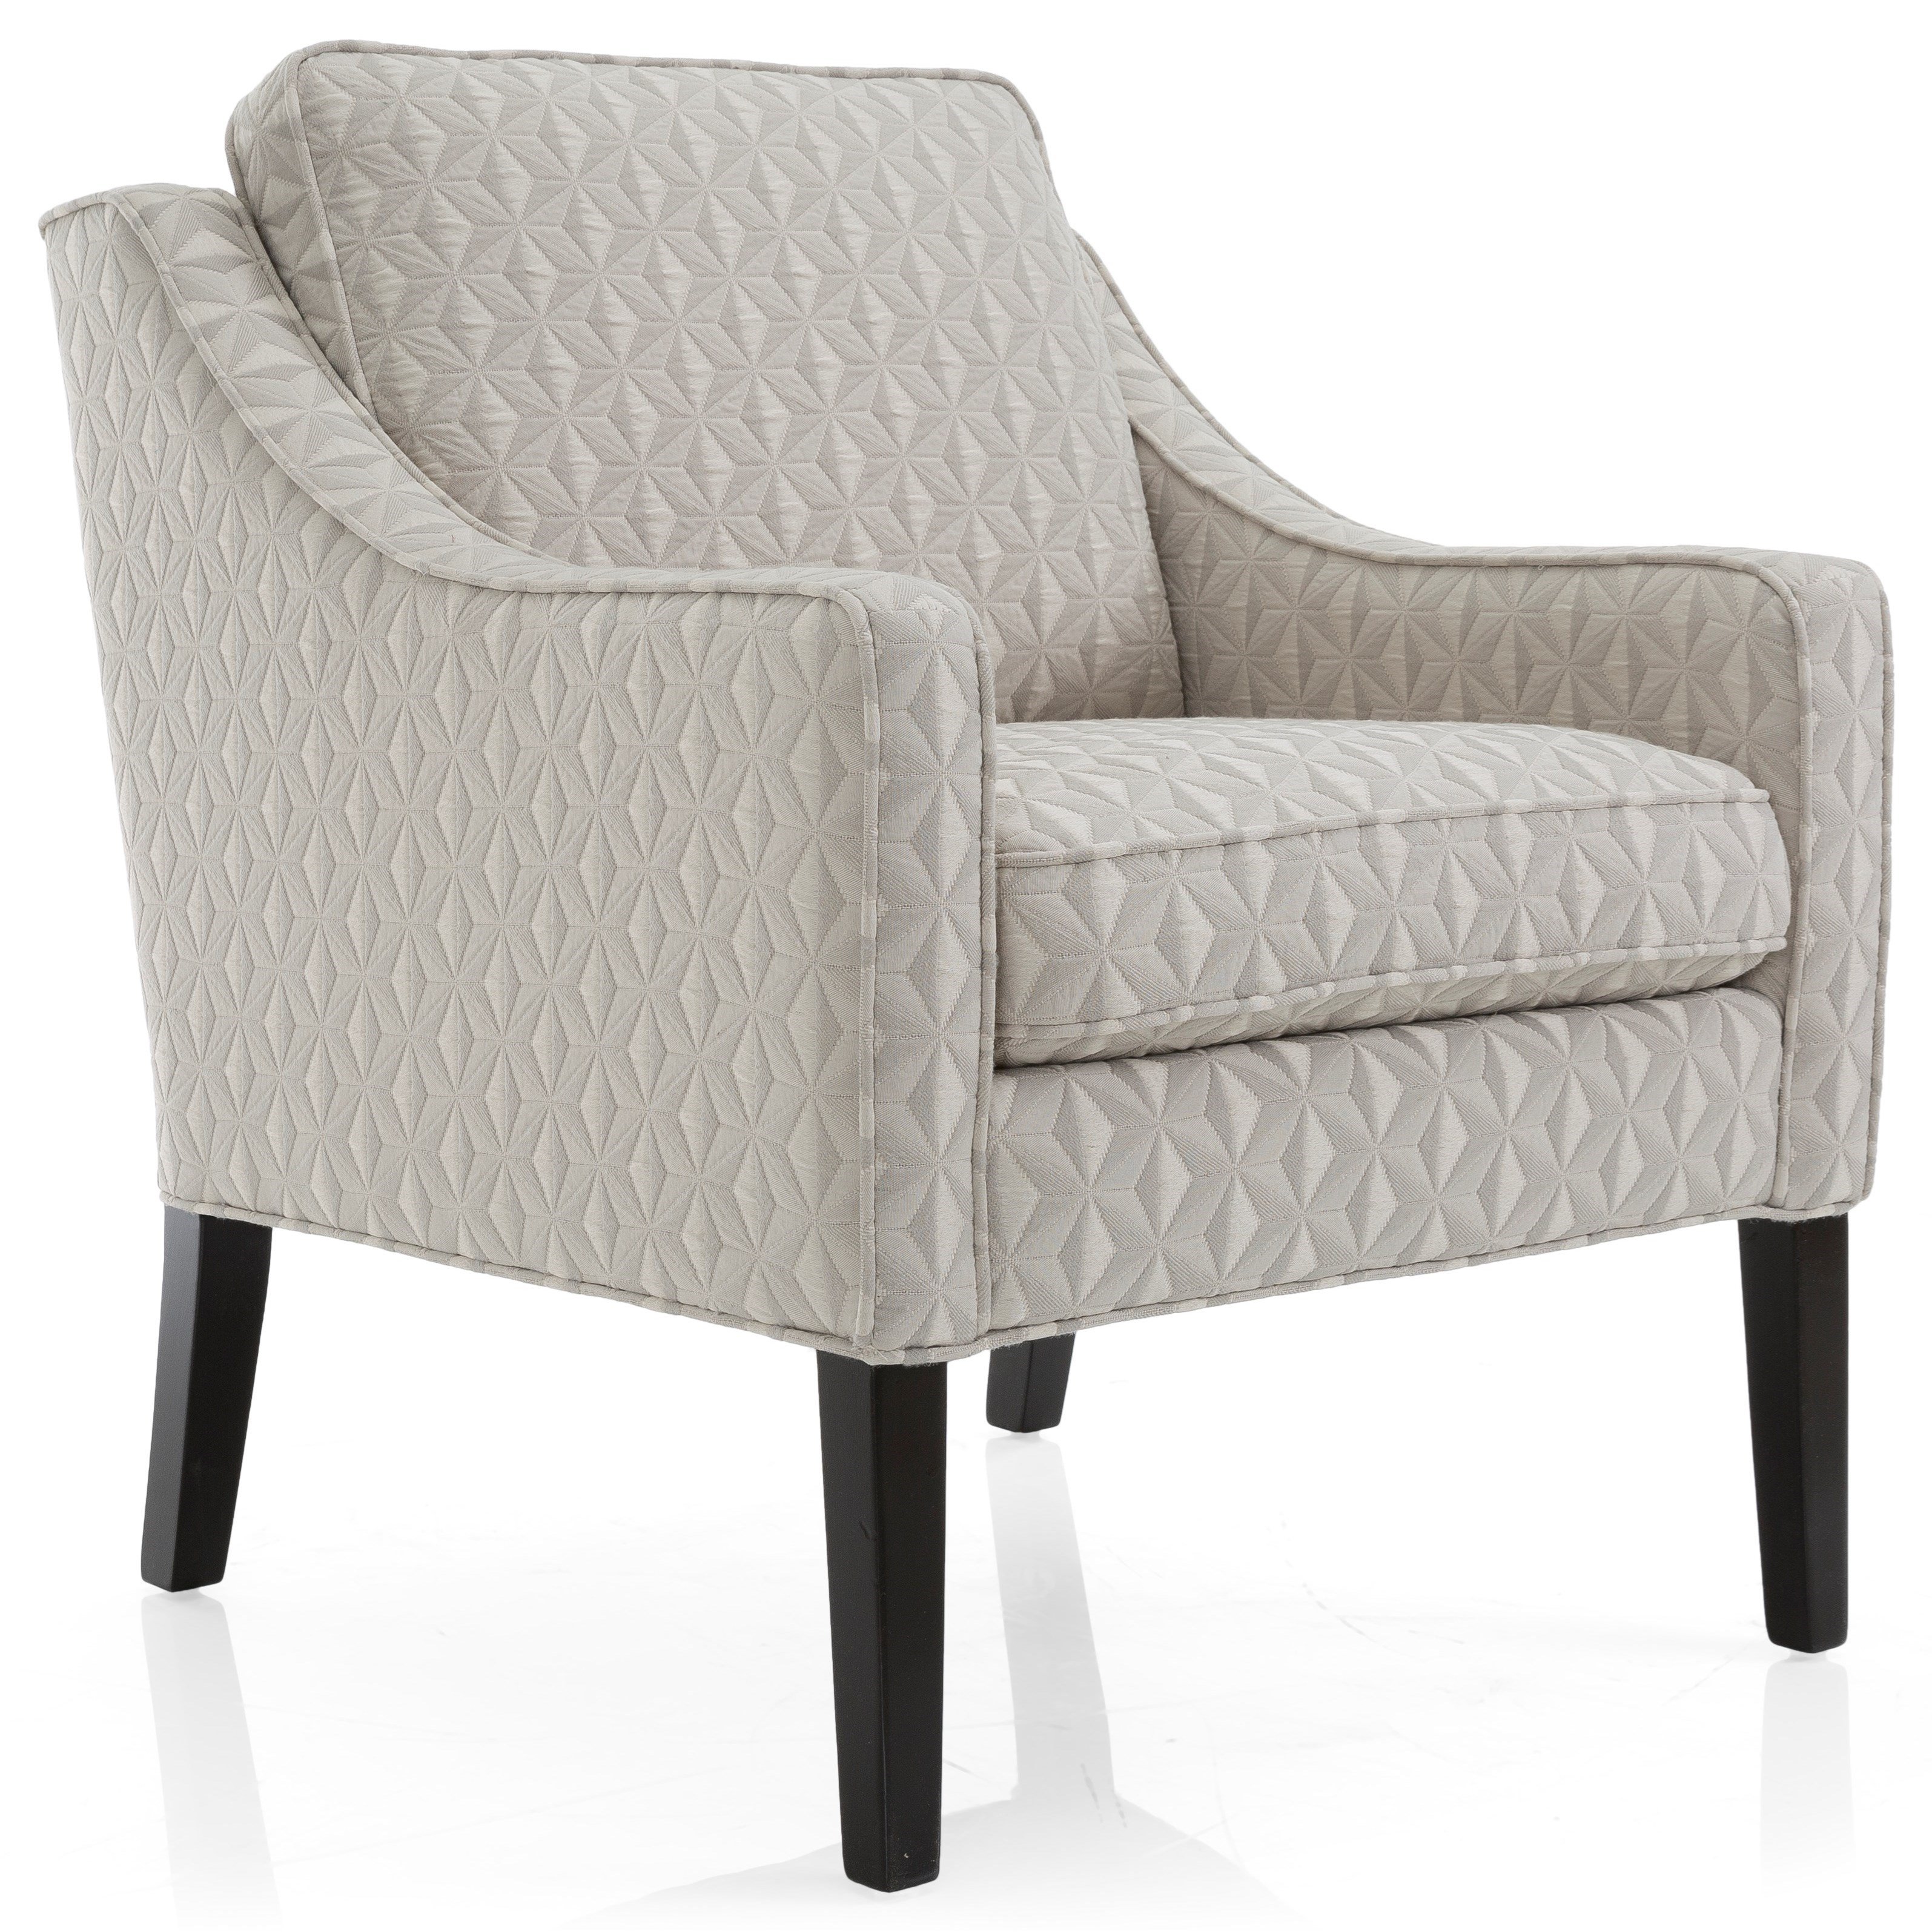 Harper Upholstered Chair by Decor-Rest at Stoney Creek Furniture